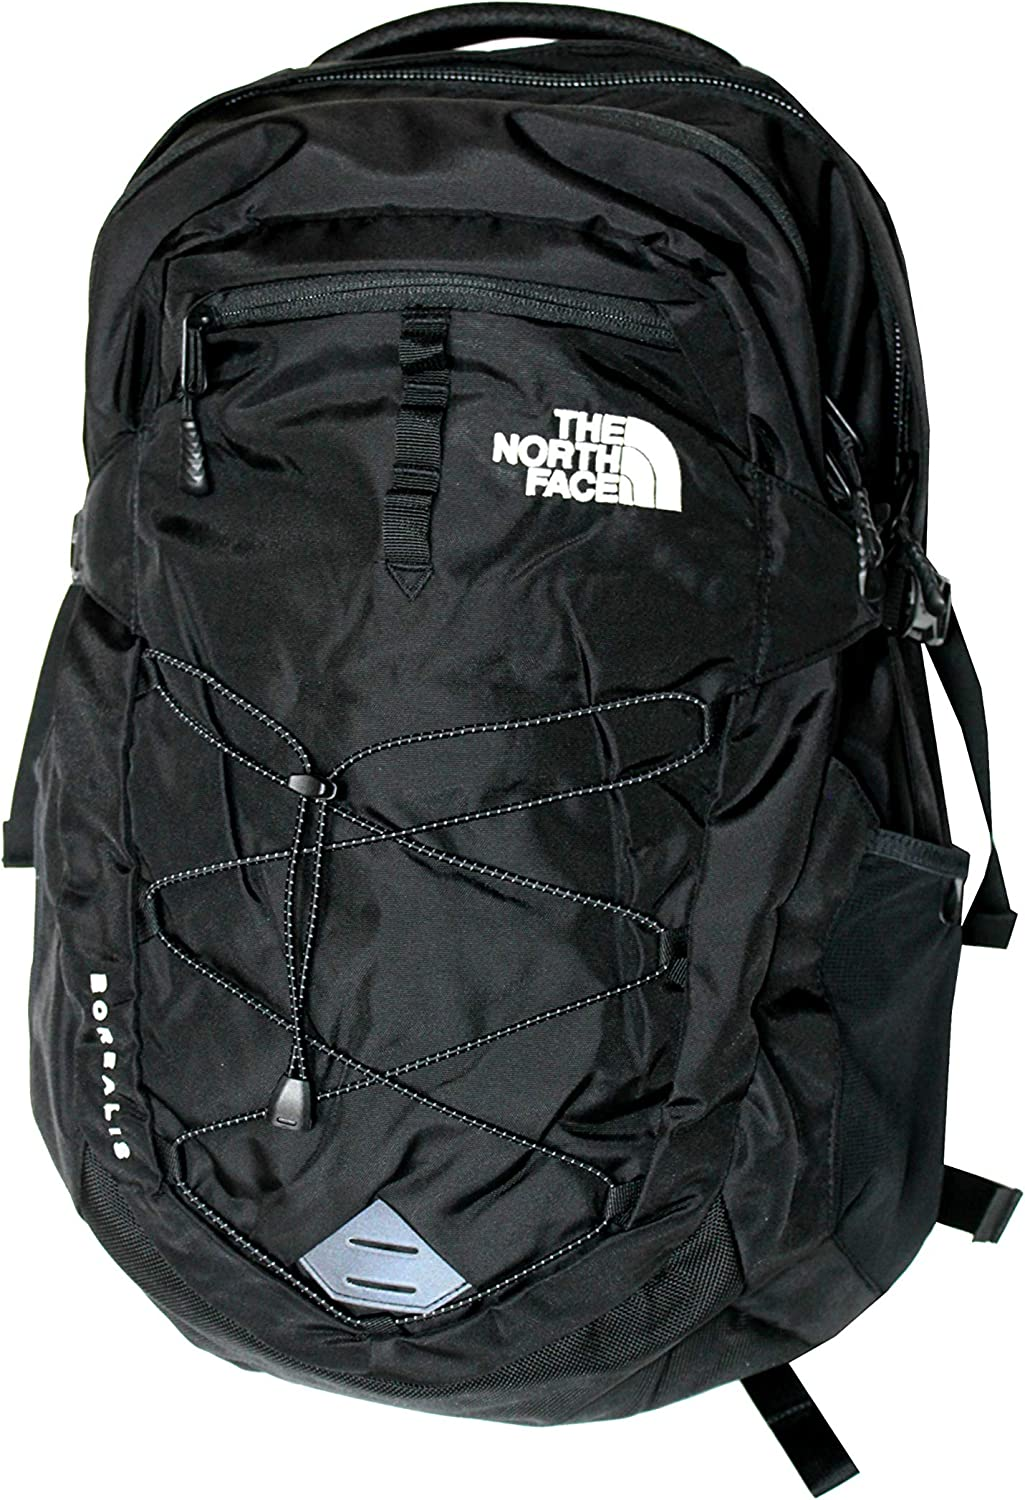 The North Face Unisex Borealis Backpack Laptop Daypack RTO TNF Black